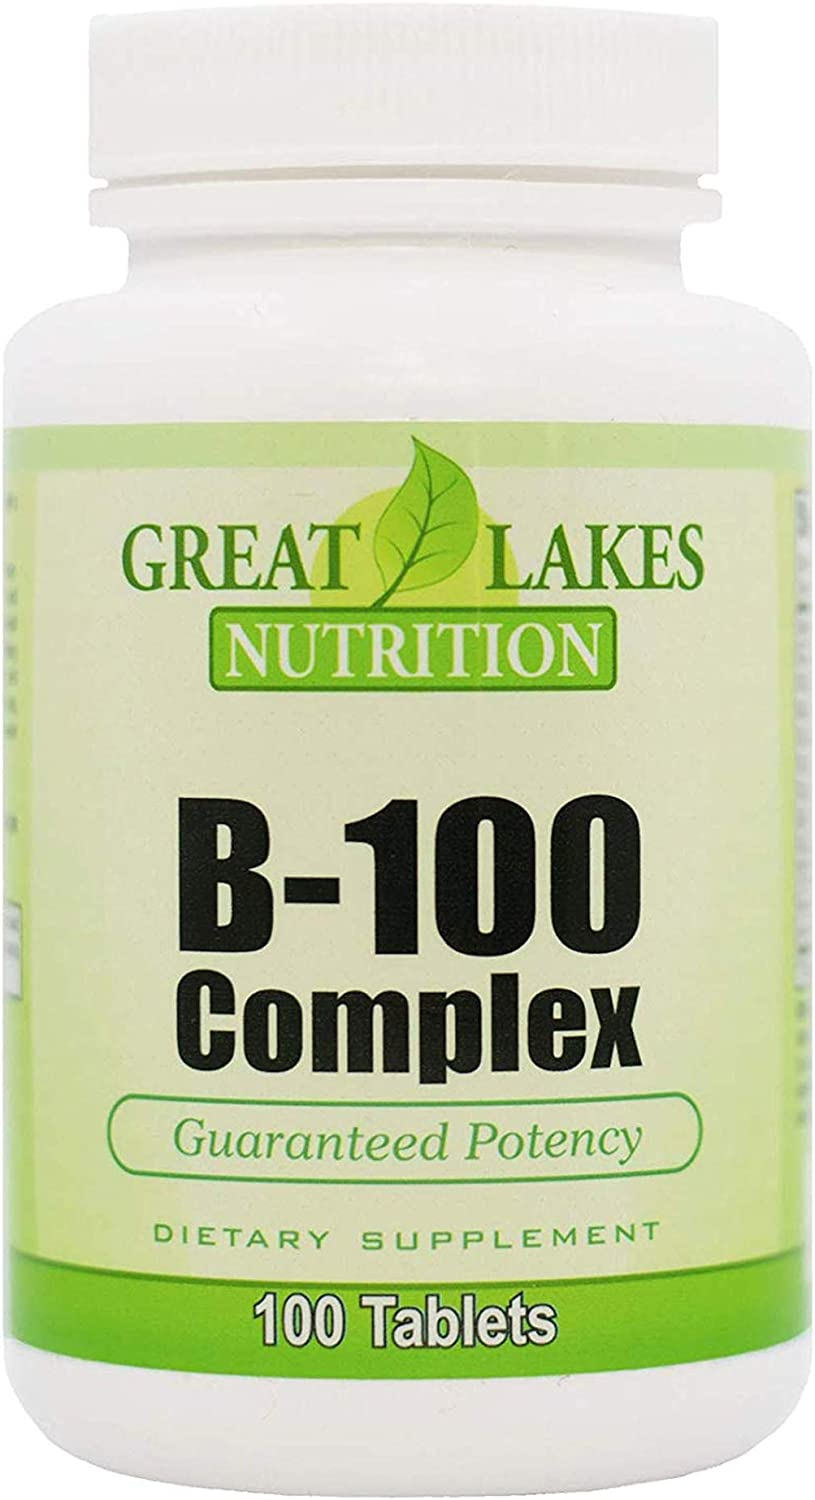 Great Lakes Direct stock discount Limited time trial price Nutrition Vegan Vitamin Dietary Supple B-100 Complex